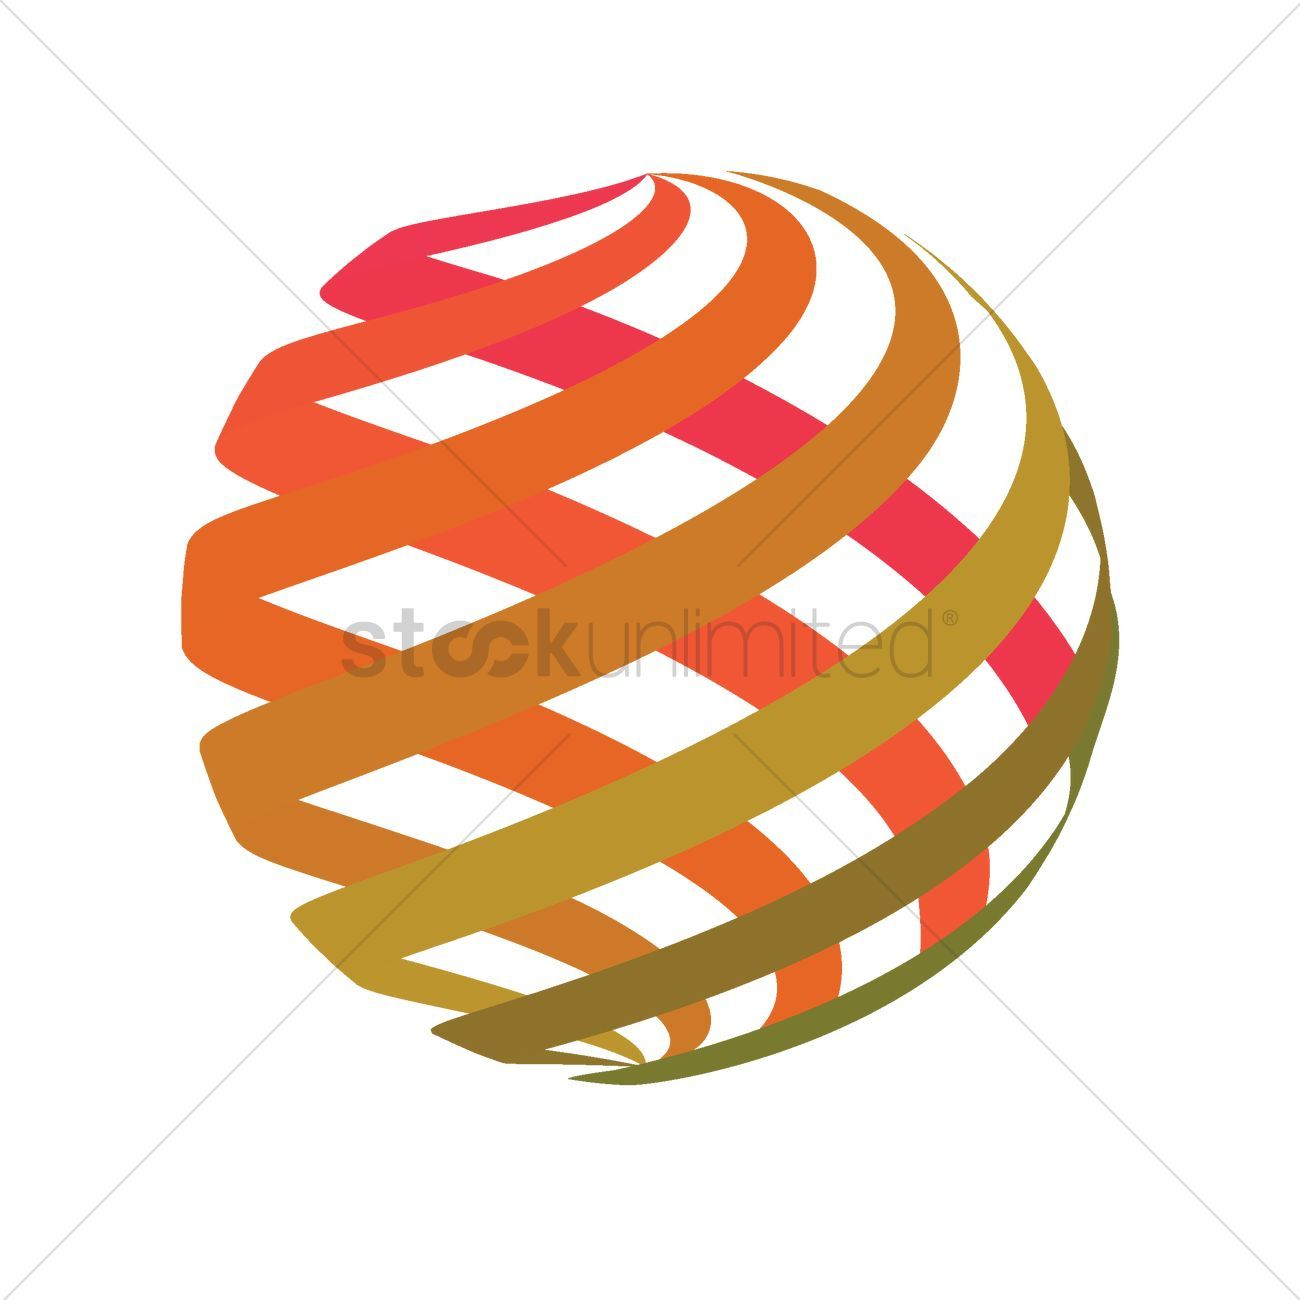 Spherical logo element design vectors stock clipart